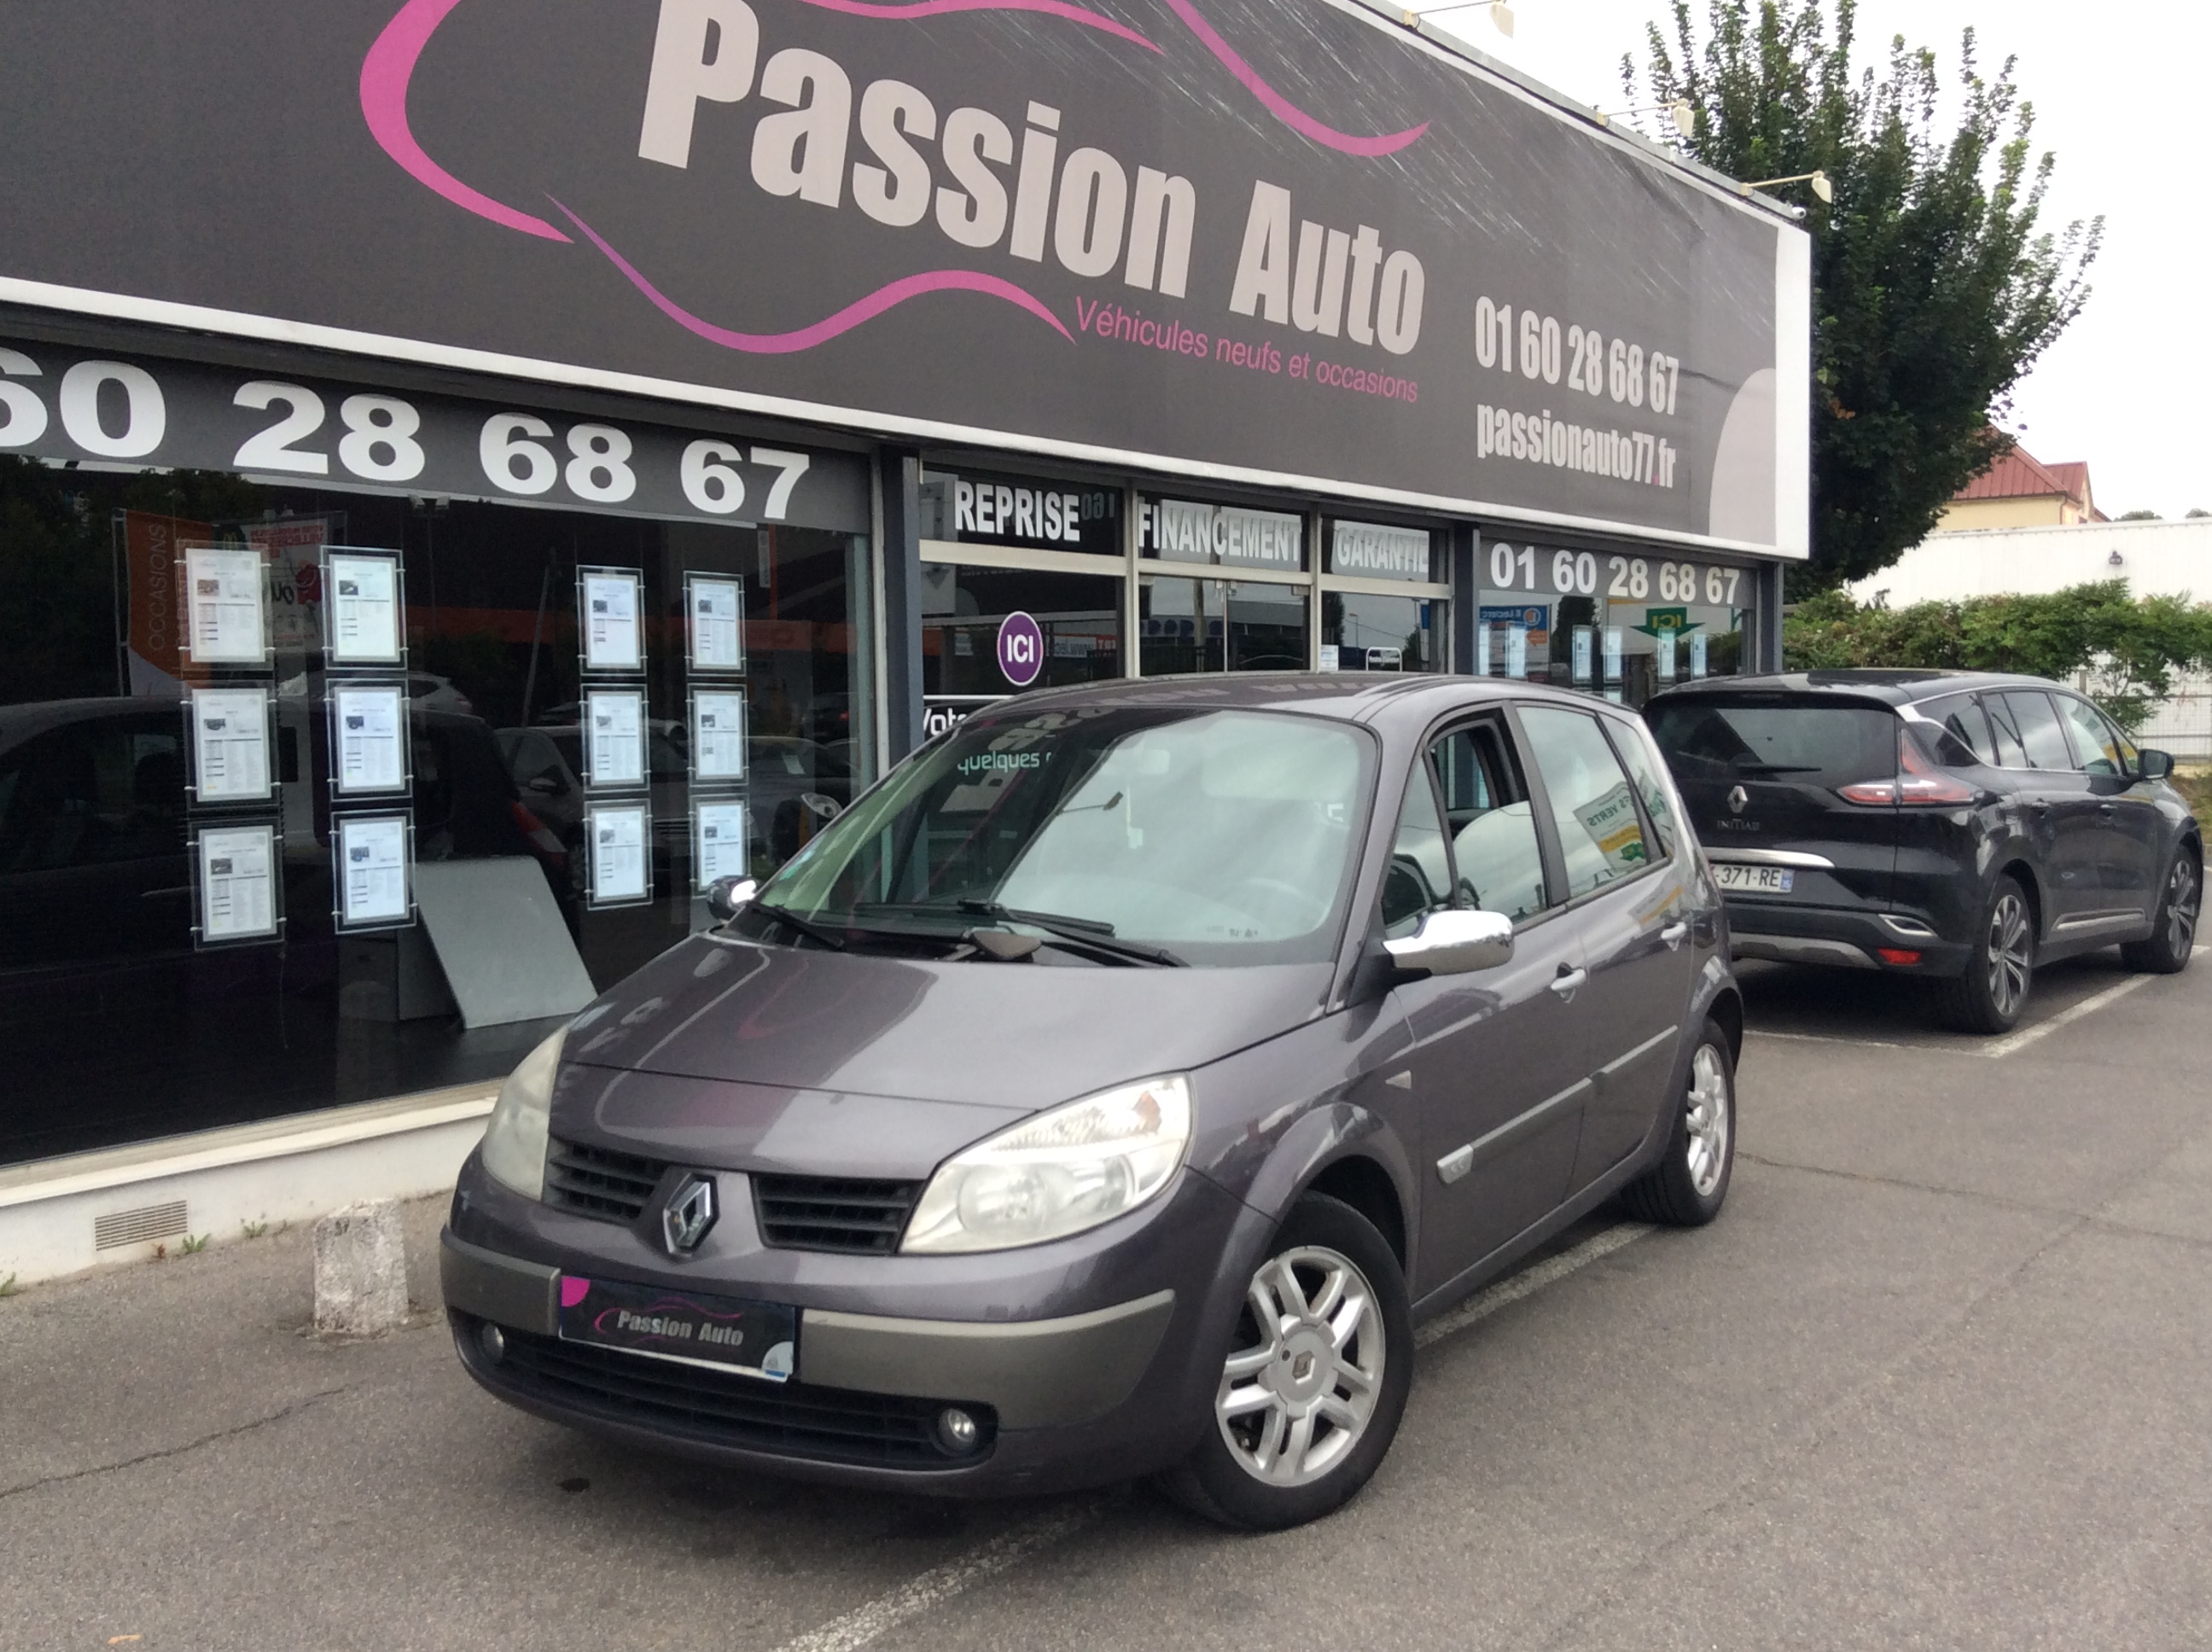 voiture renault scenic 1 5 dci 105 euro 4 exception occasion diesel 2005 168000 km 2990. Black Bedroom Furniture Sets. Home Design Ideas